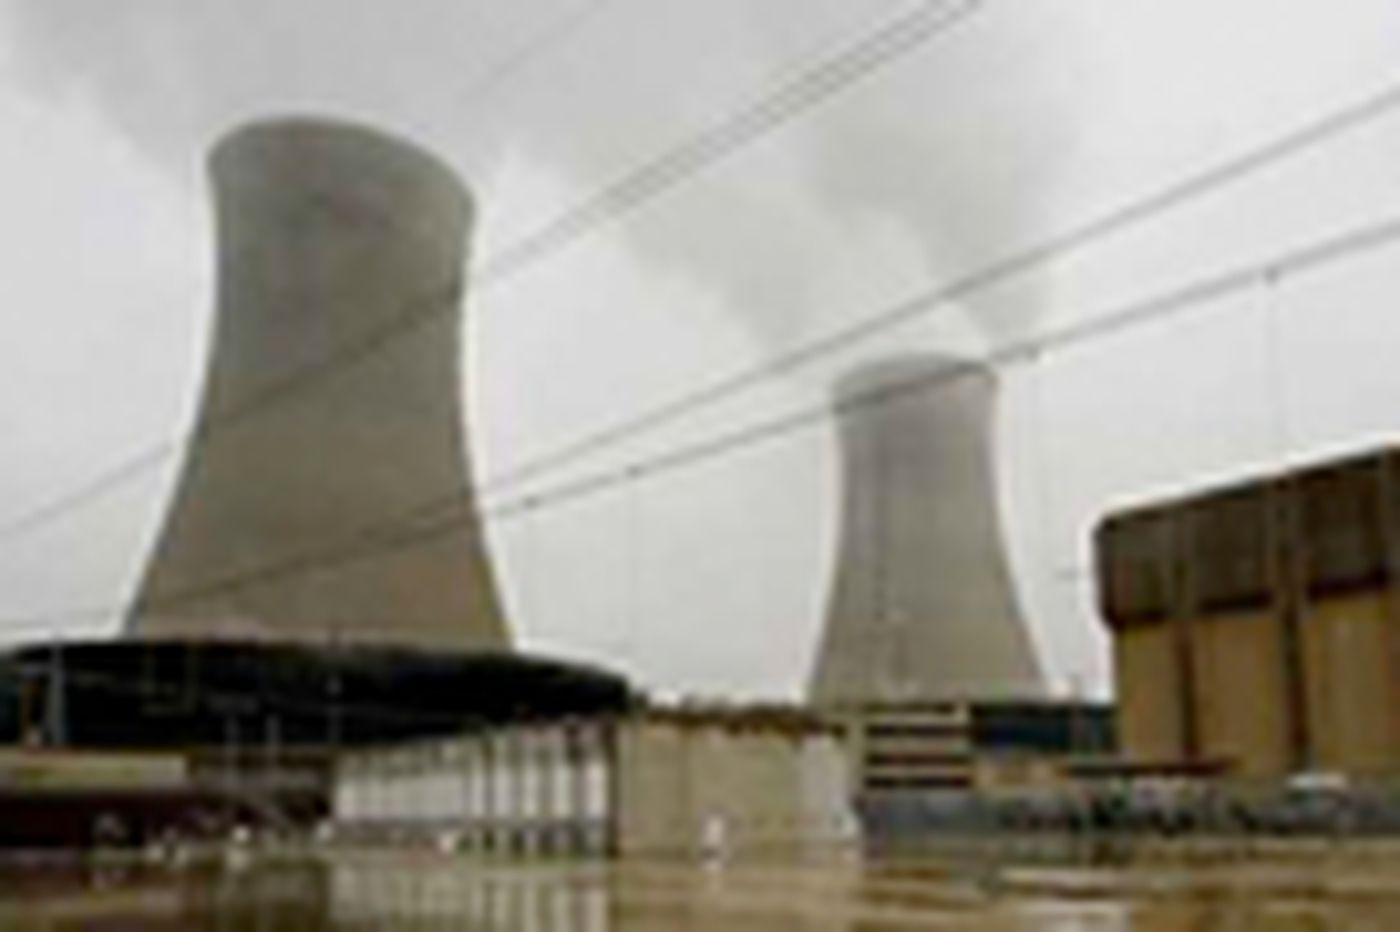 NRC adds oversight on one Limerick reactor